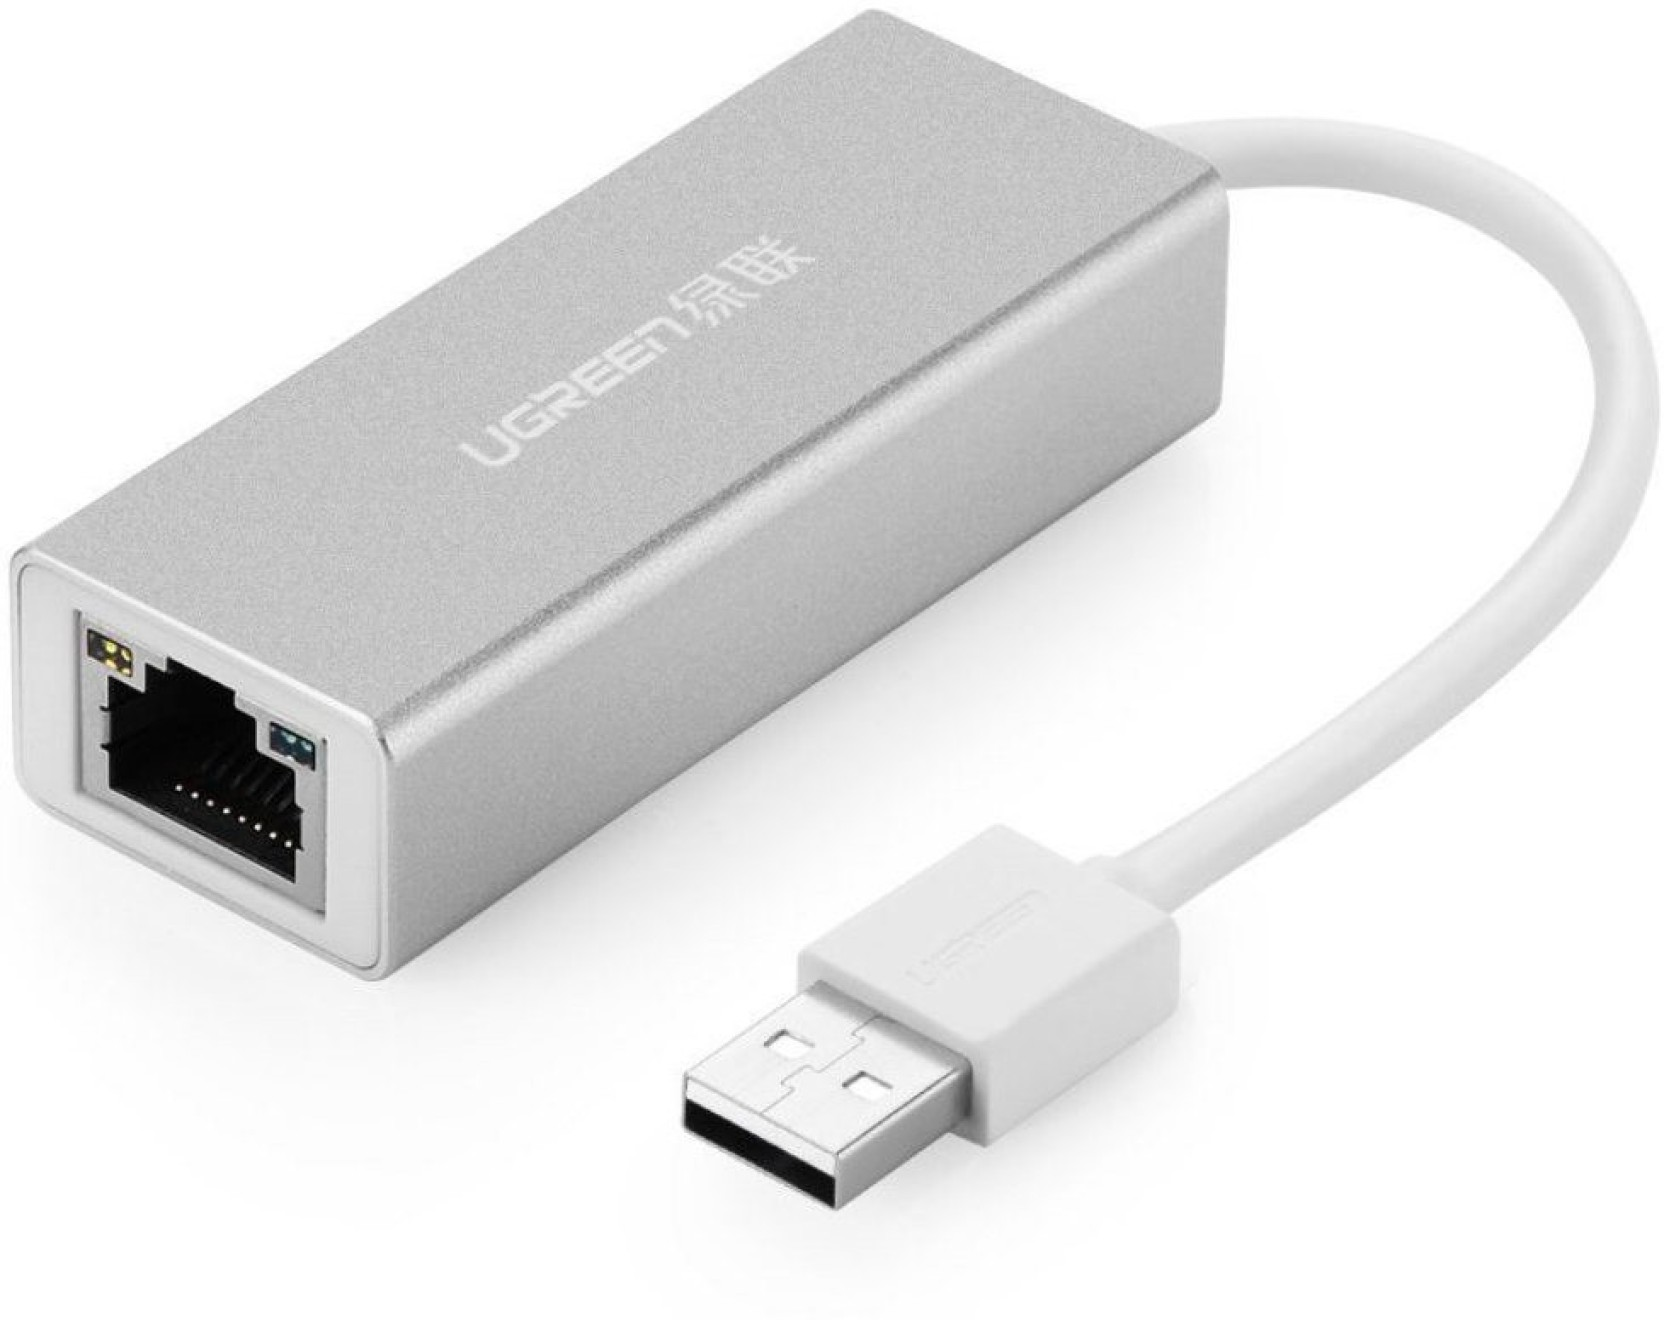 Ugreen Ethernet Adapter Usb 20 To 10 100 Network Rj45 Lan Wired Home